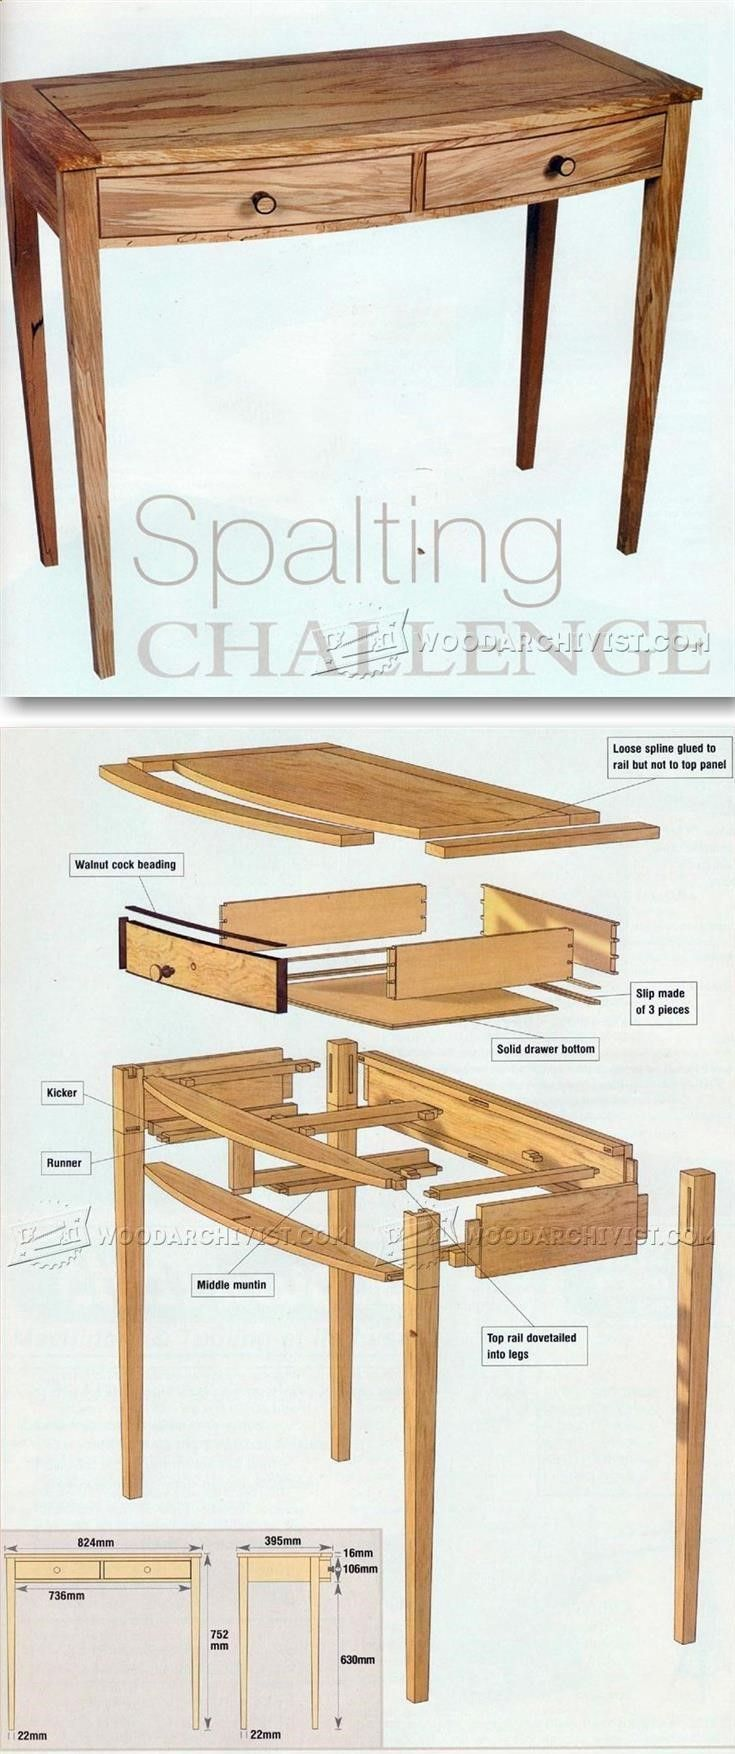 Side Table Plan - Furniture Plans and Projects   WoodArchivist.com #woodworkingprojects